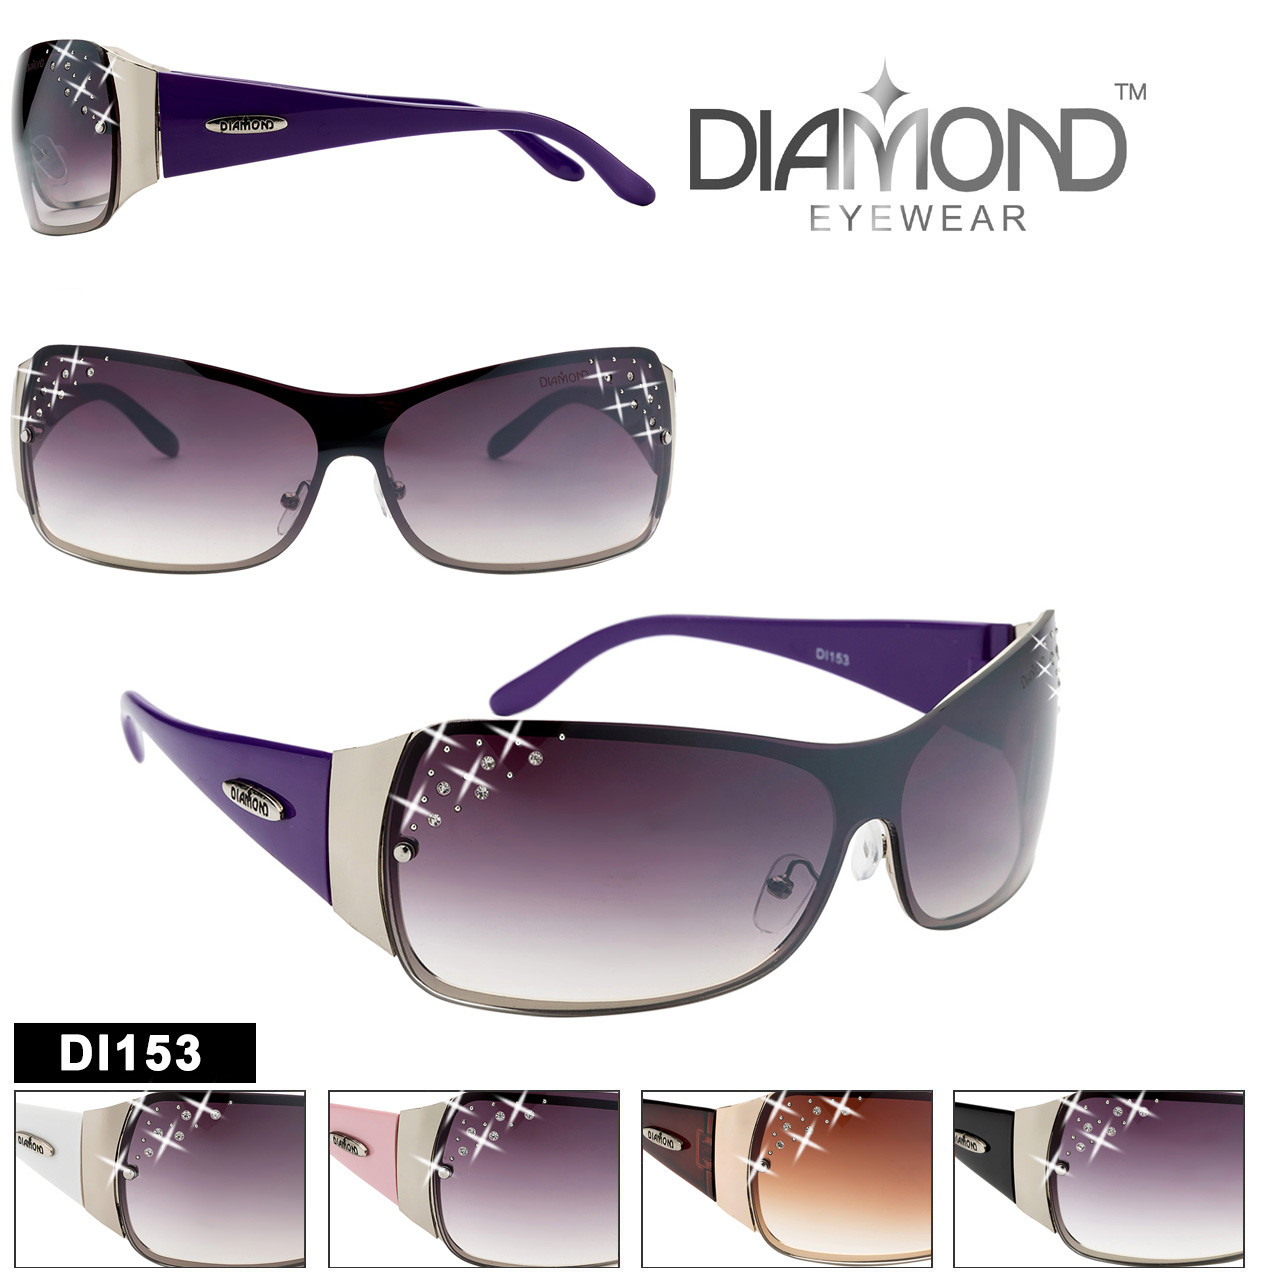 8ea3efec47d Diamond™ Eyewear Rhinestone Wholesale Sunglasses - Style  DI153 (